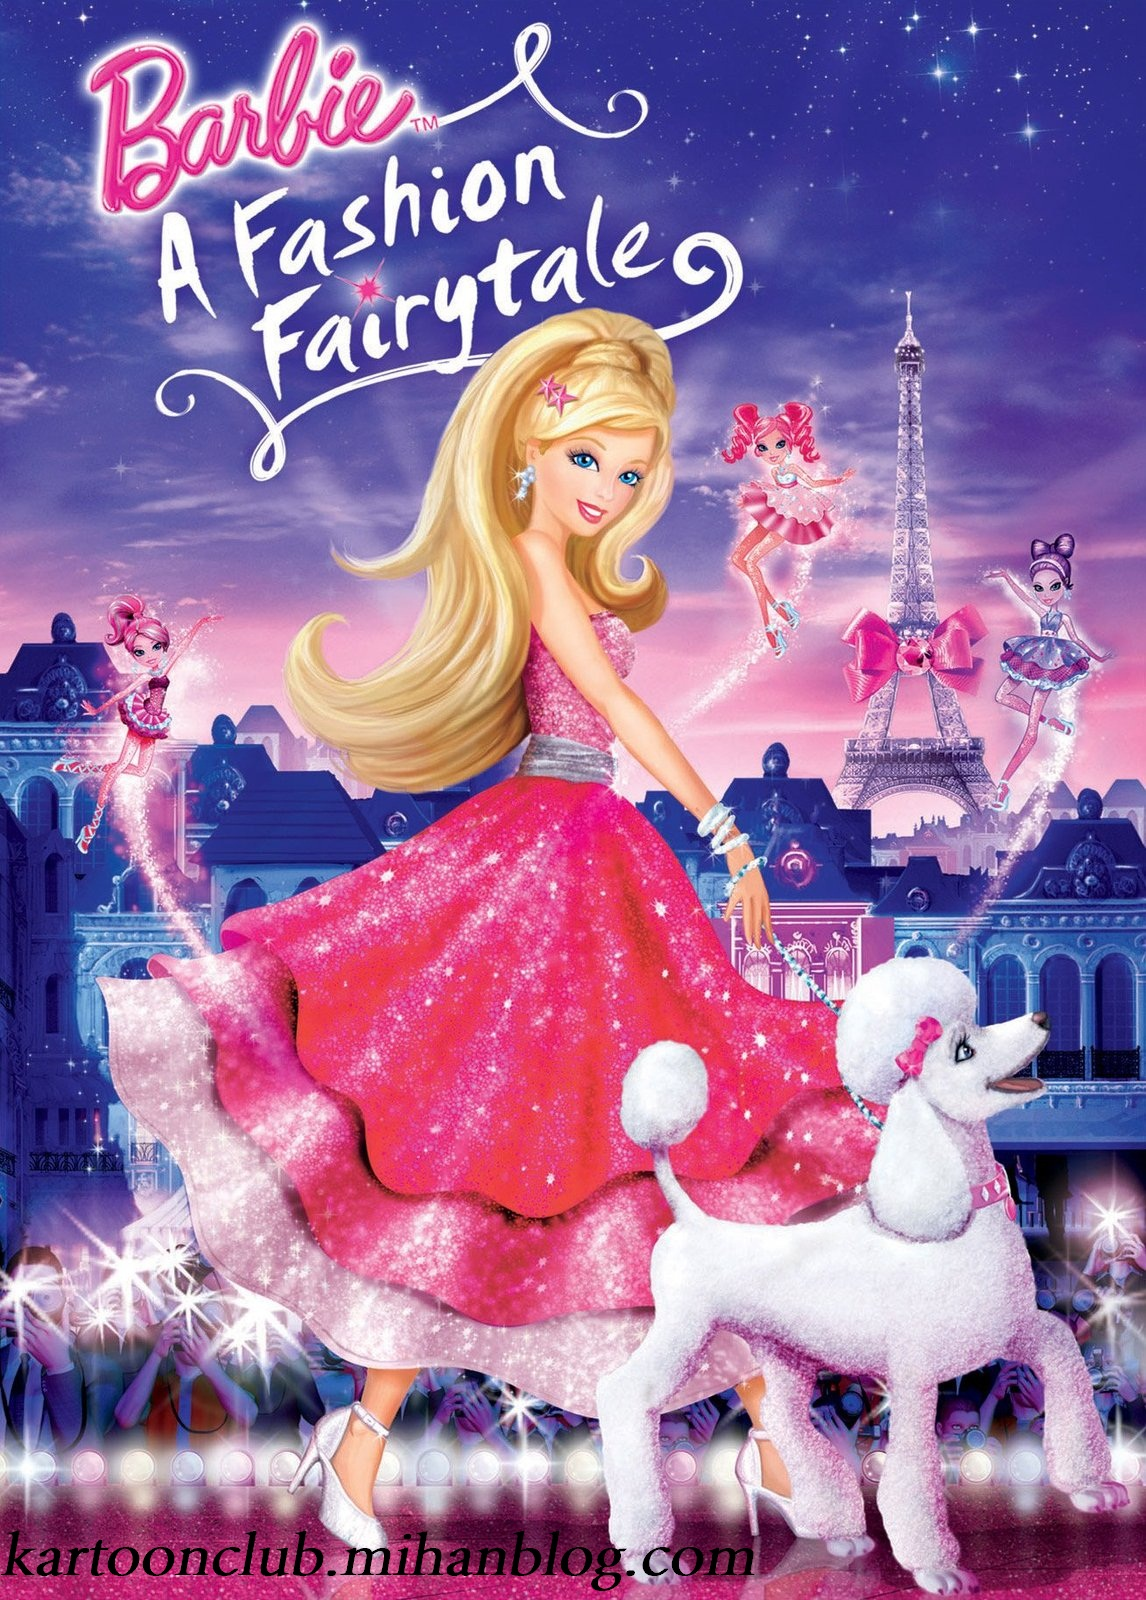 http://s5.picofile.com/file/8129074184/Barbie_A_Fashion_Fairytale_Cover.jpg